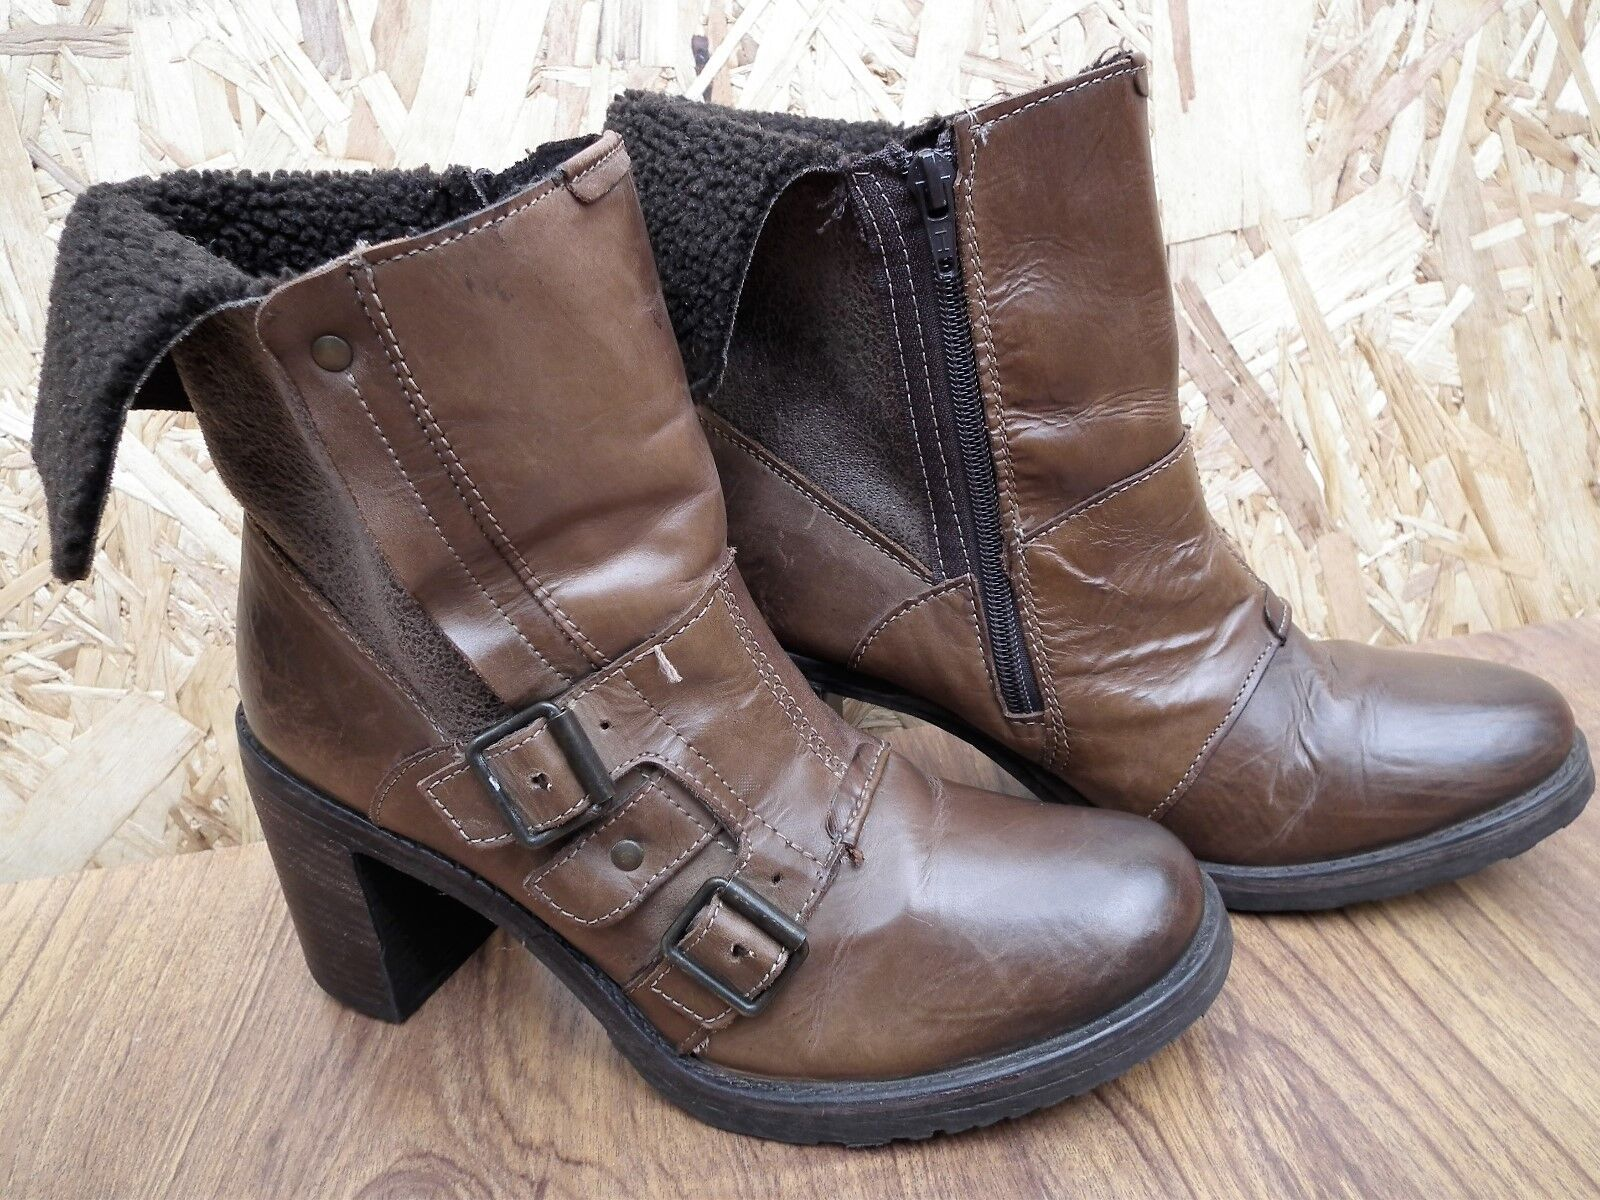 ALDO Leather Ankle Length Women's Boots UK Size 6